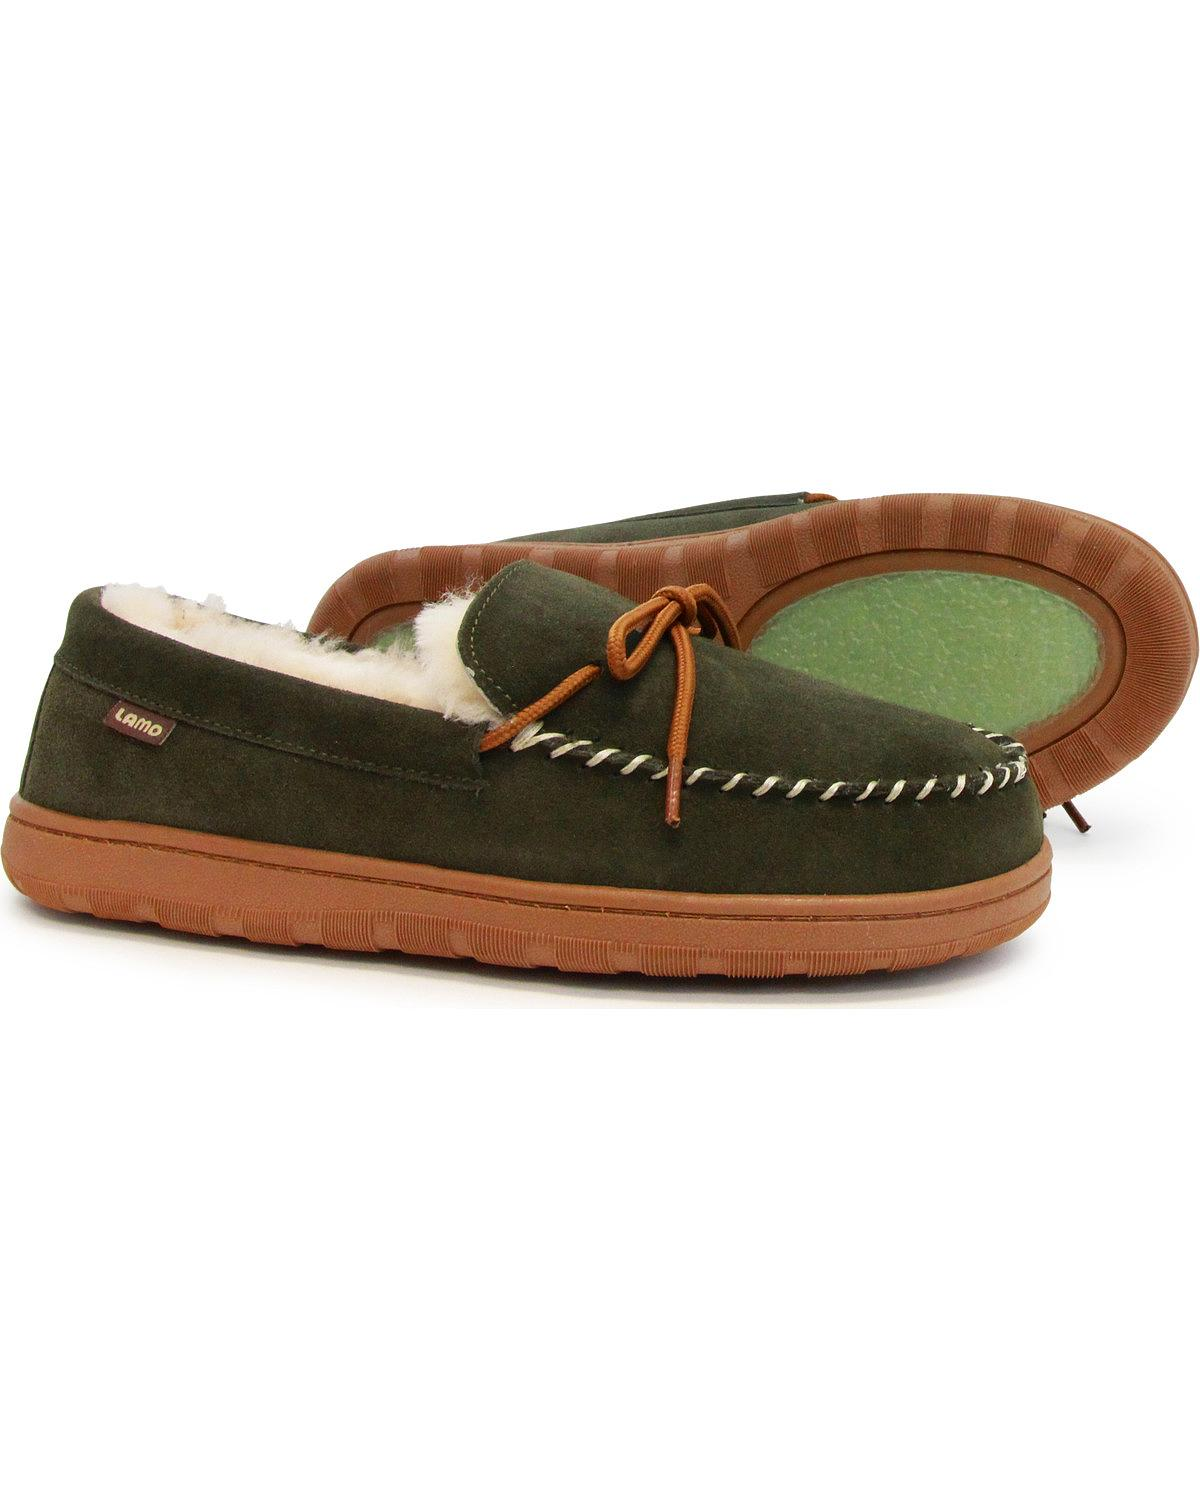 Lamo Footwear Men's Moccasins M0002-92 by Lamo Footwear